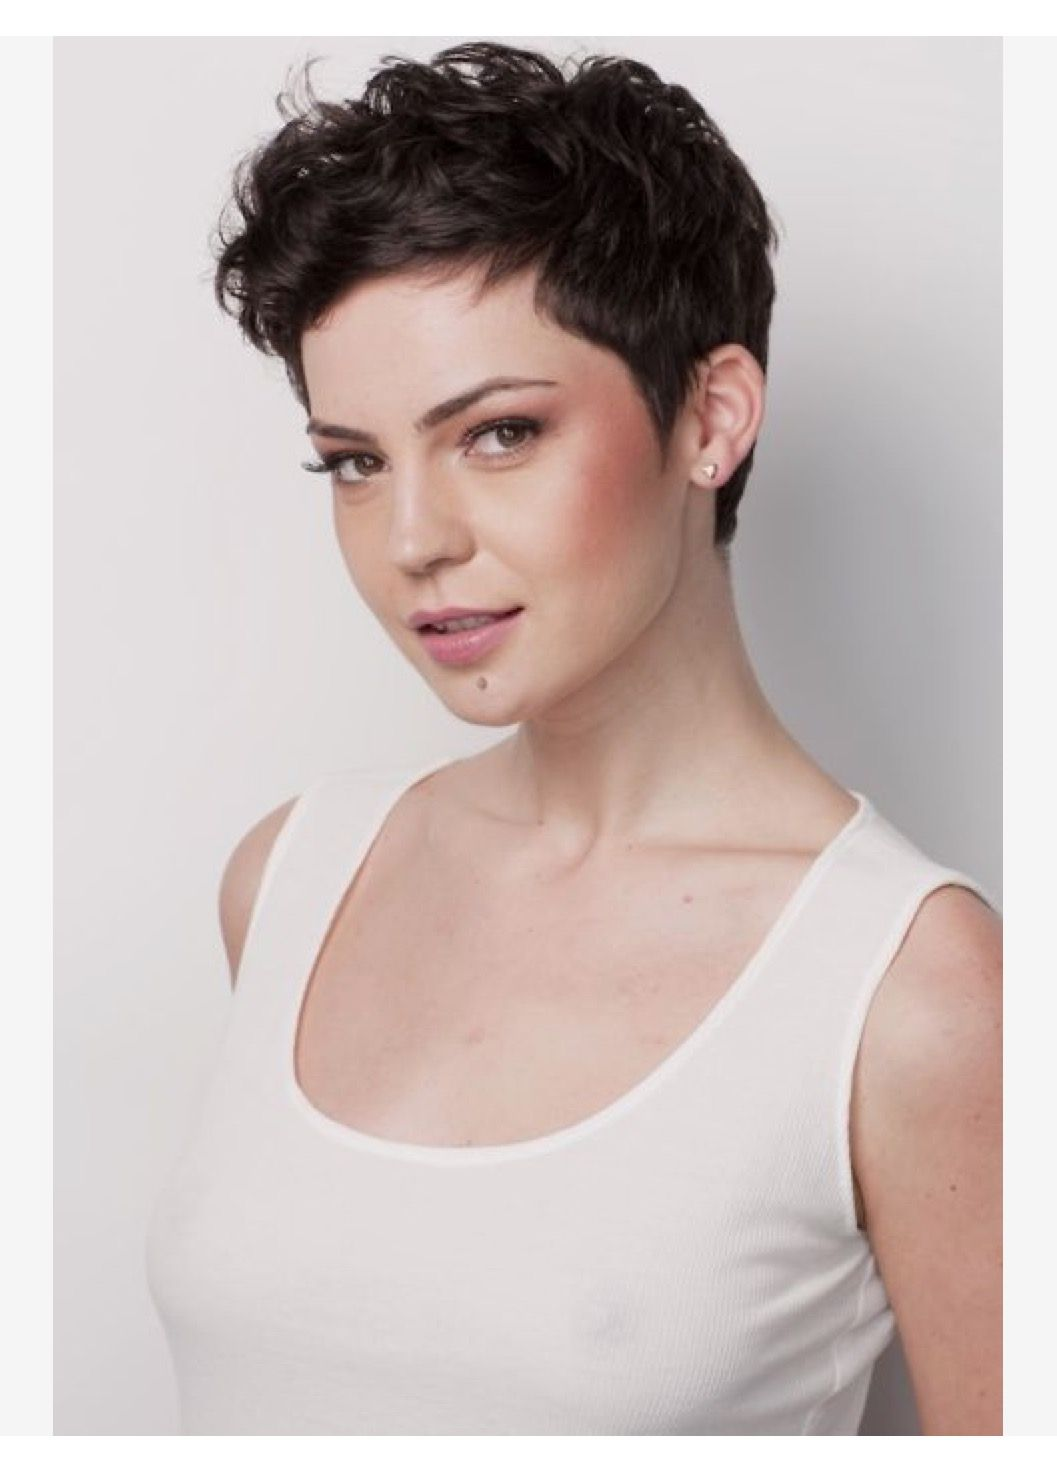 Pin by roseanna prkr on pixie land pinterest short hair pixies